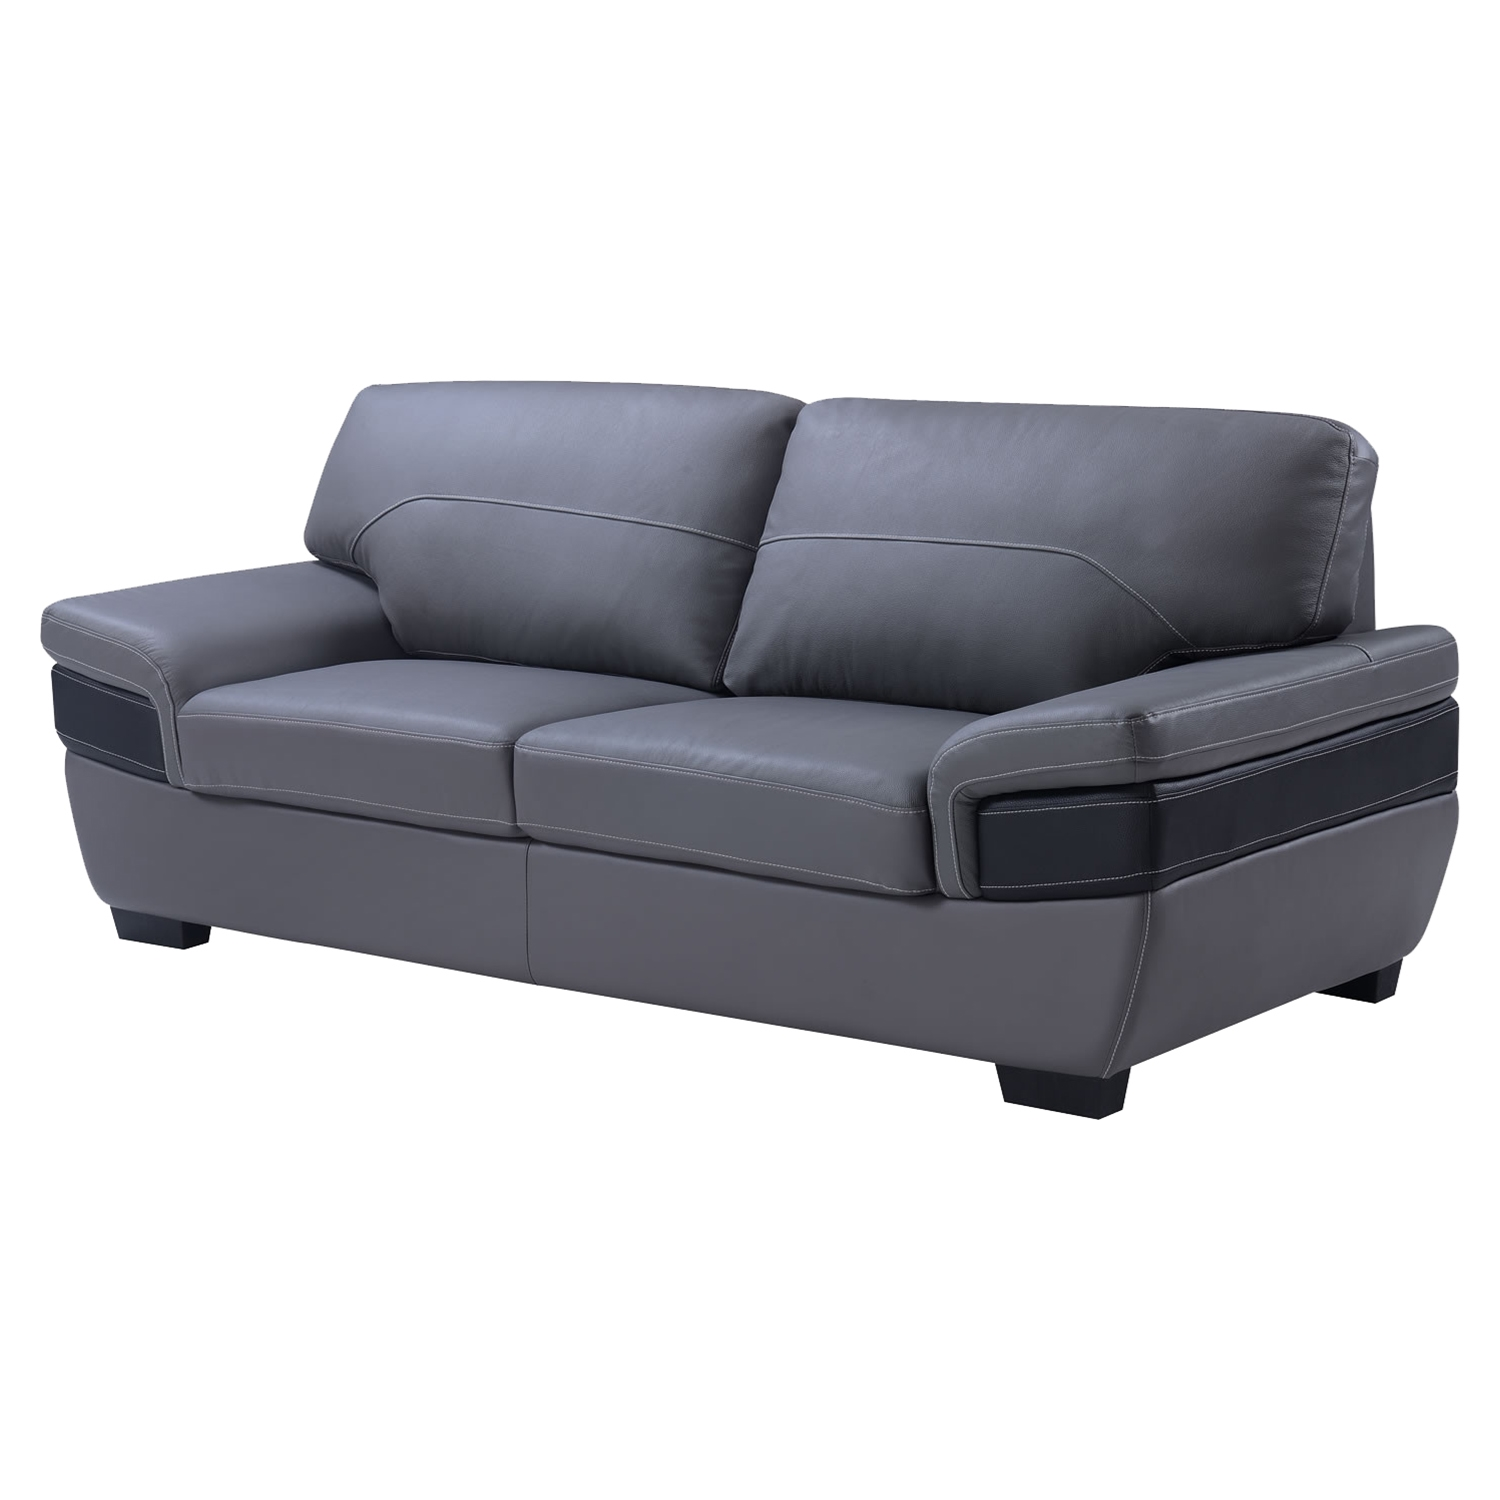 Alicia Leather Sofa - Dark Gray/Black - GLO-U7230-L6R-S